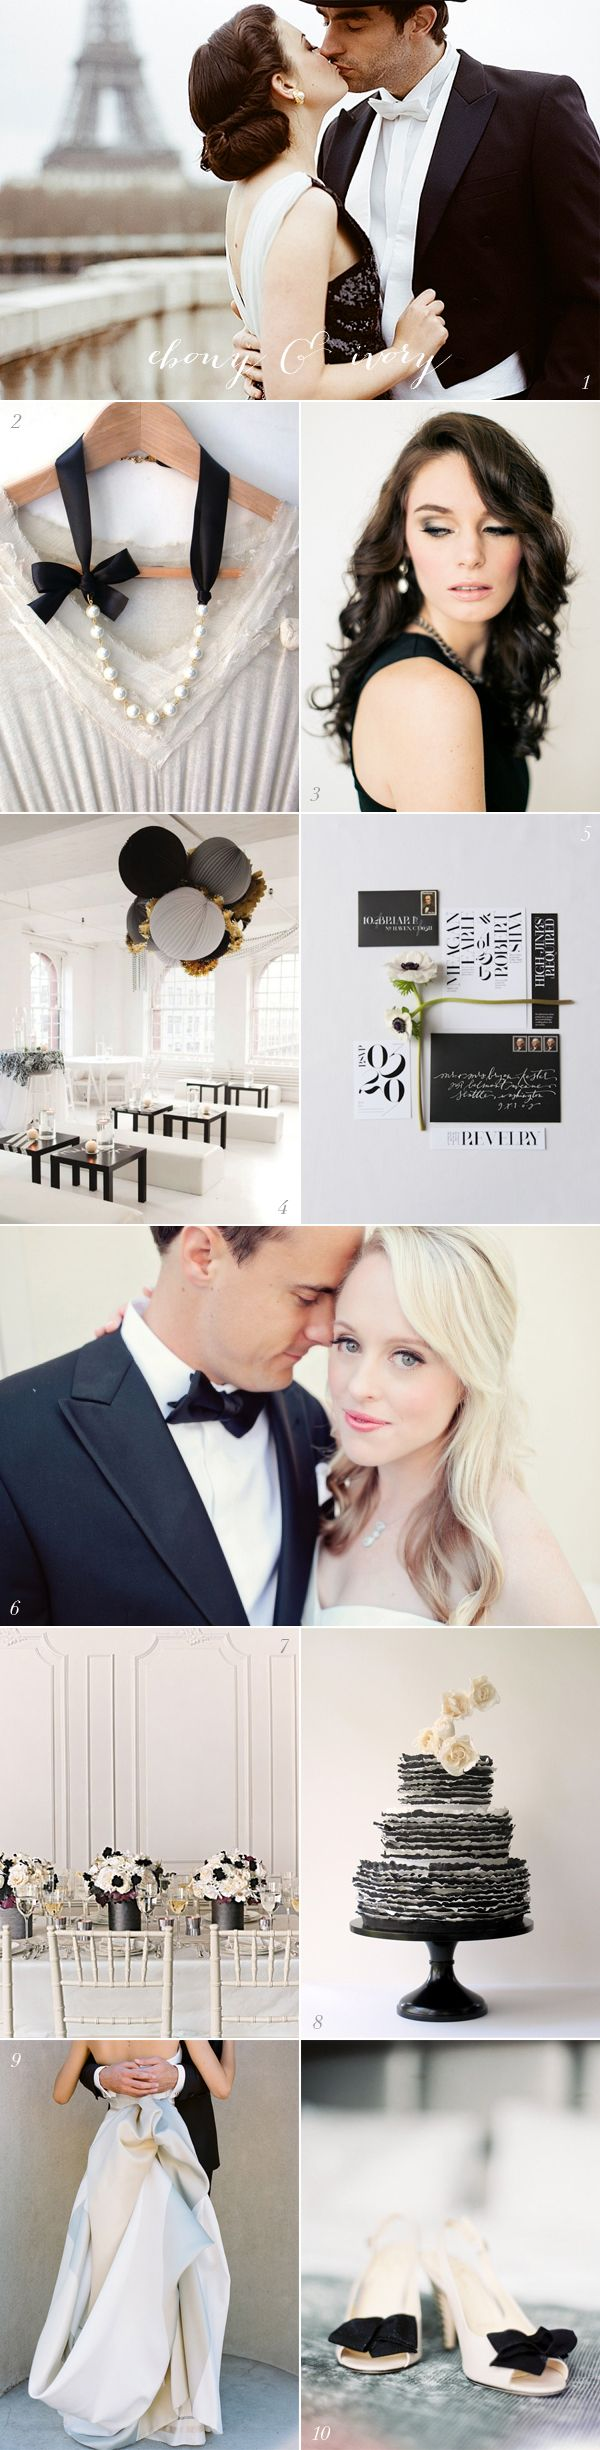 Black & White Wedding Theme Ideas 18